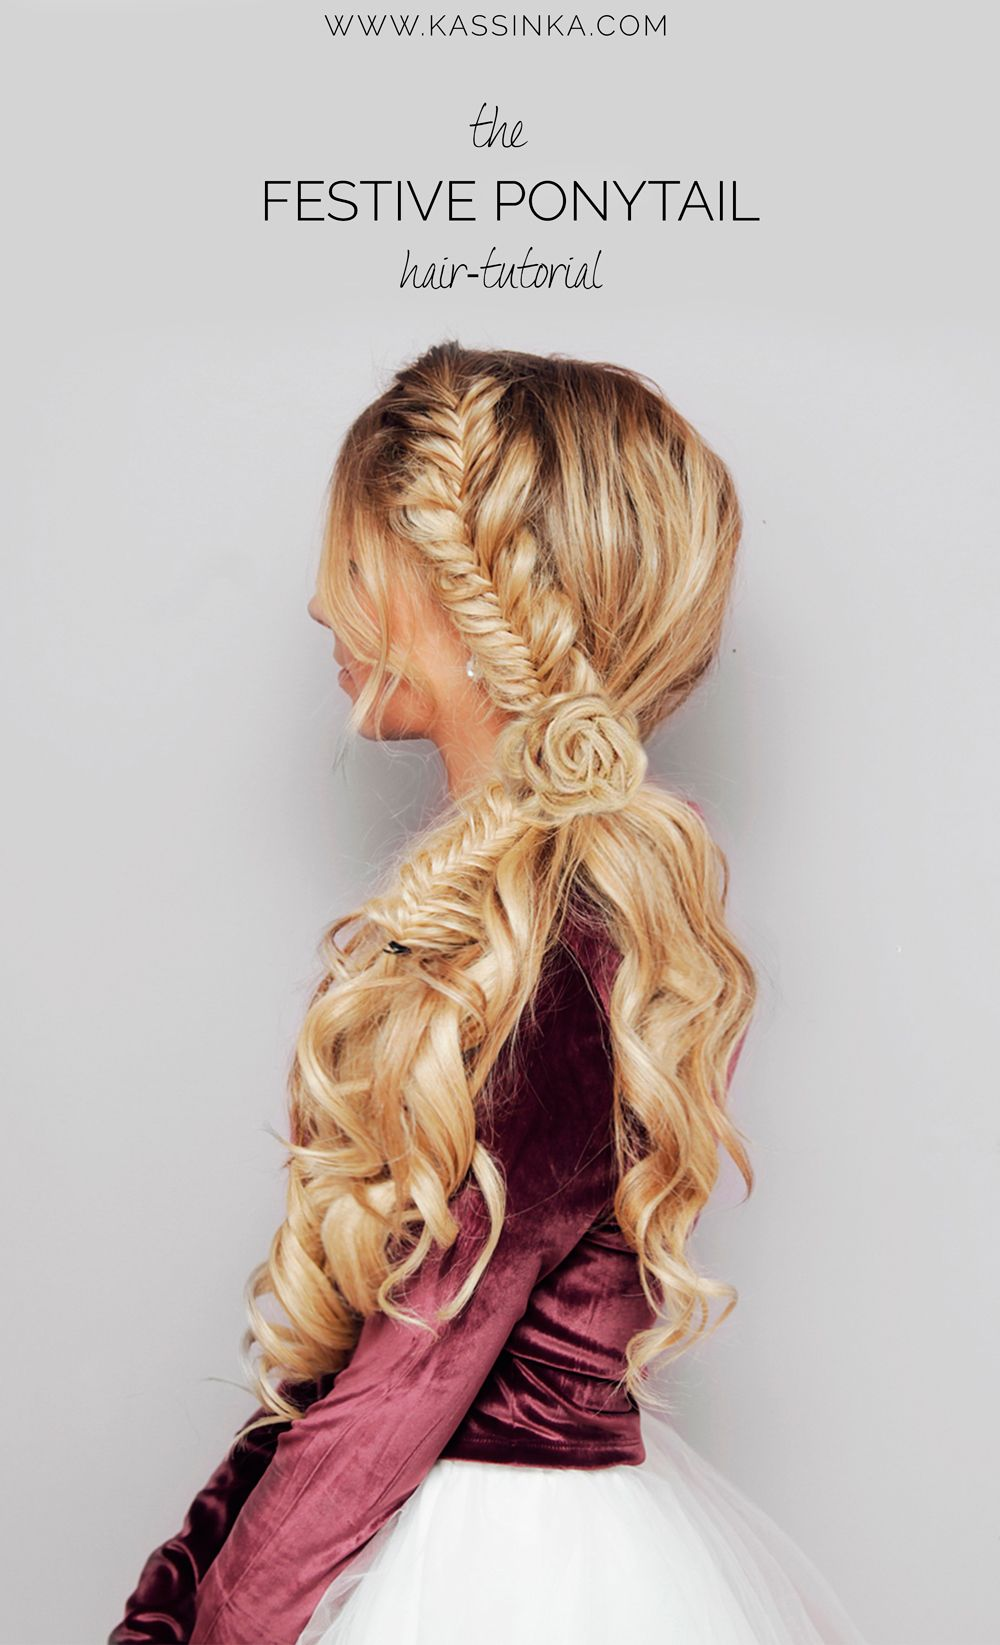 Kassinka festive ponytail hair tutorial hair pinterest